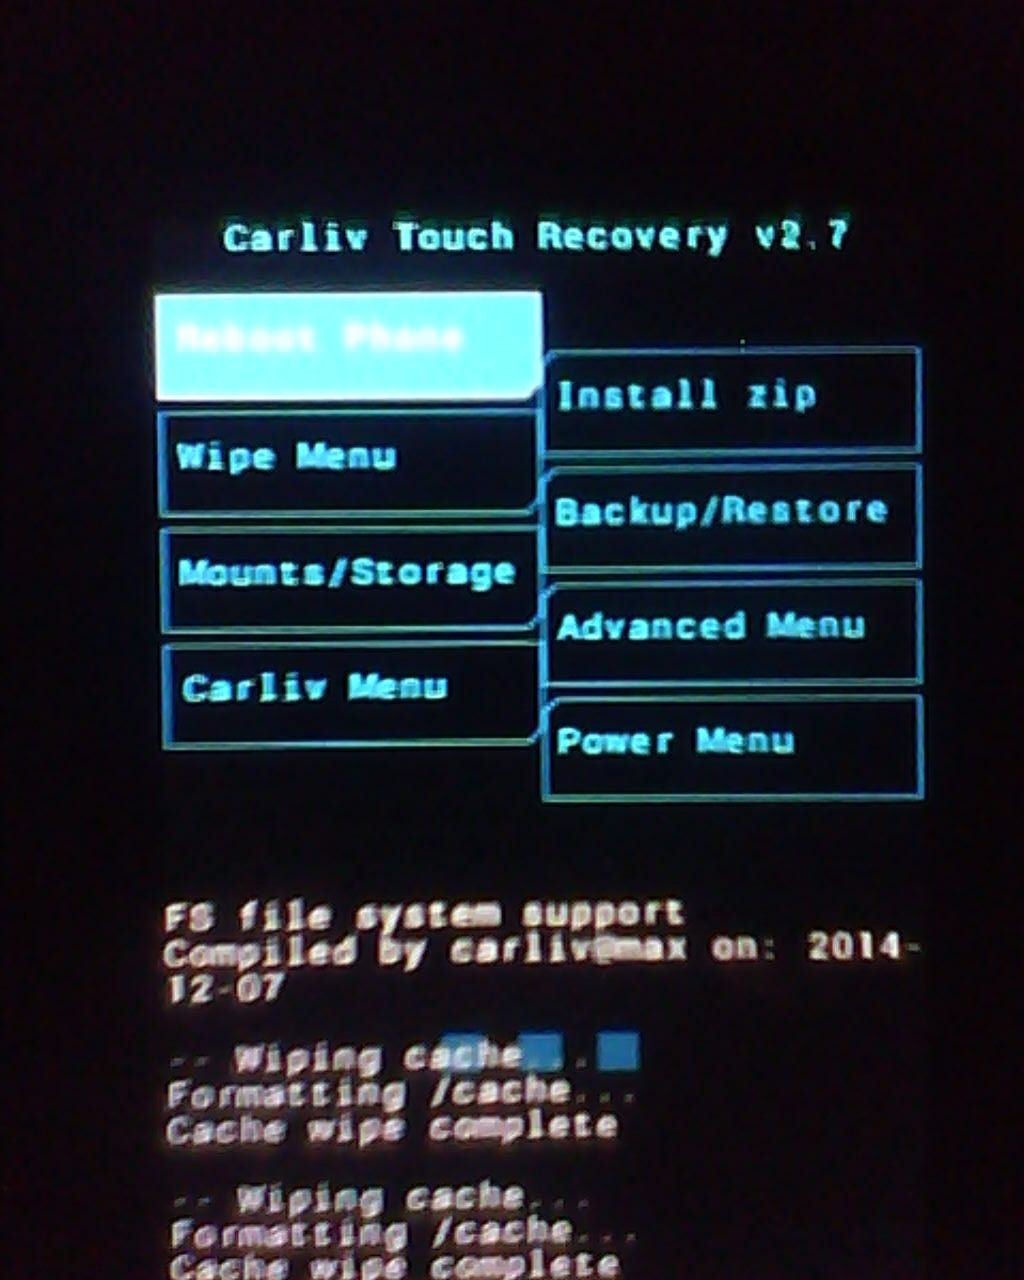 Installing the Recovery